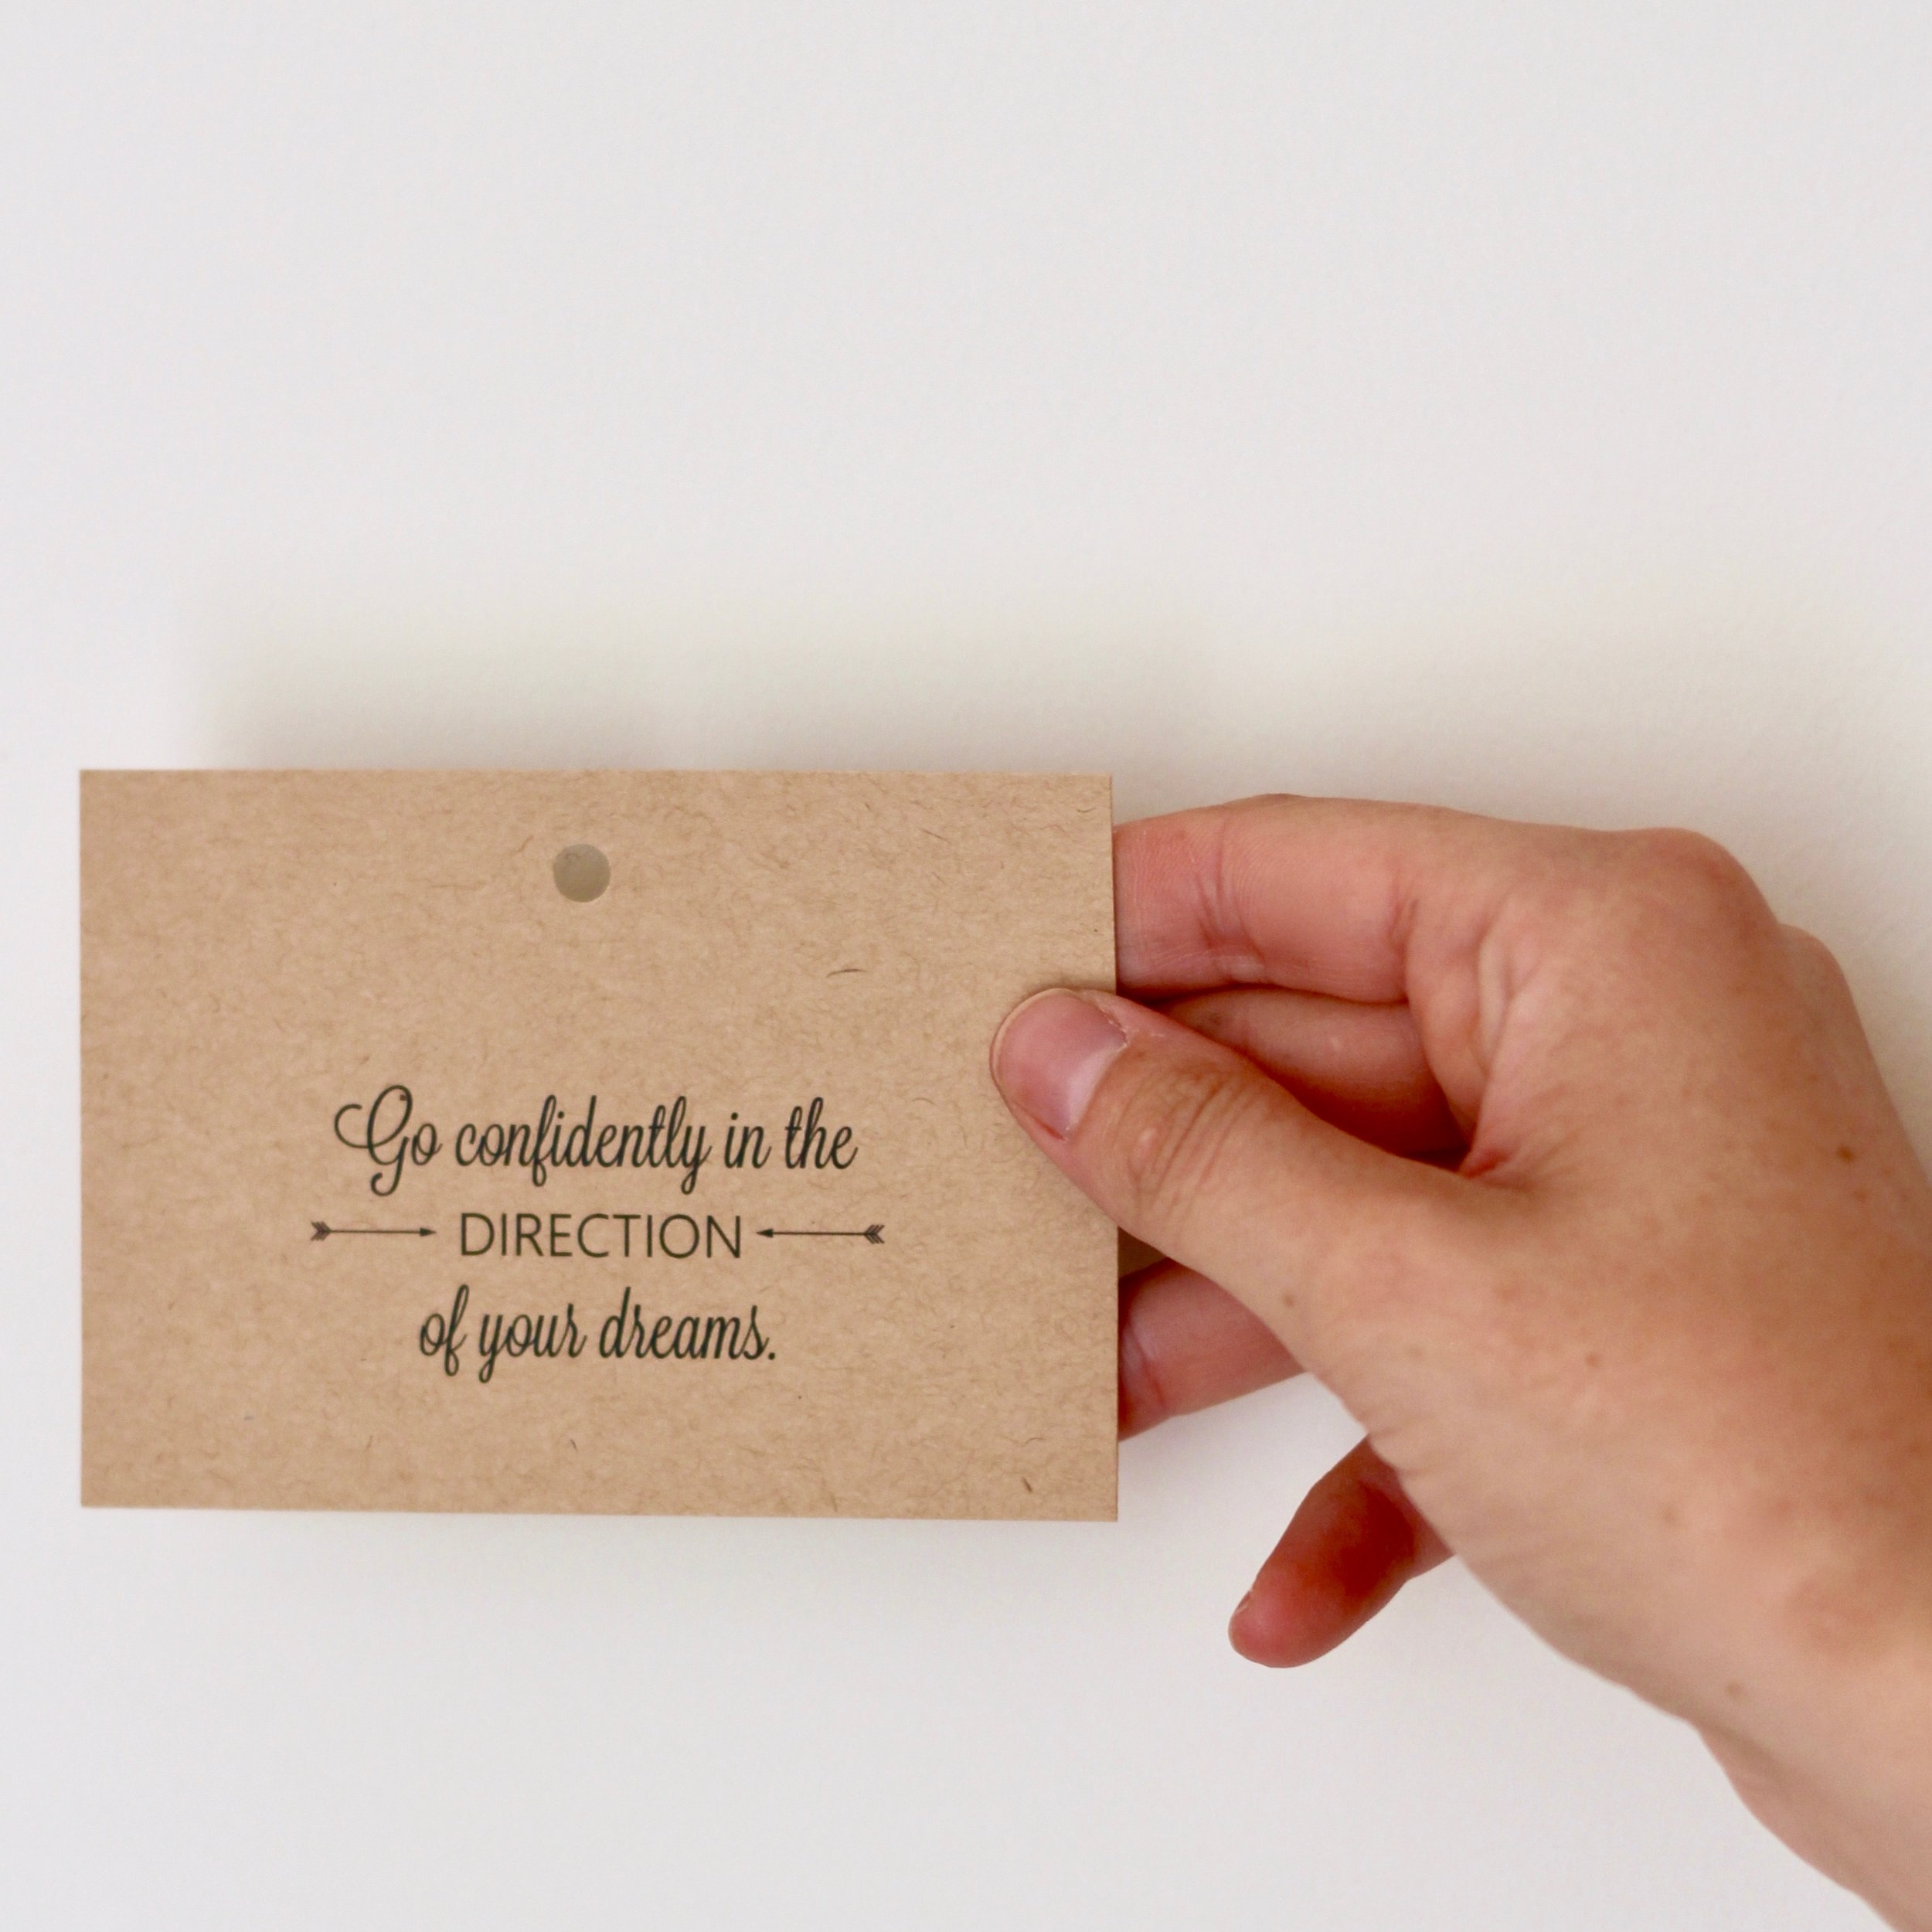 Hand holding card: go confidently in the direction of your dreams